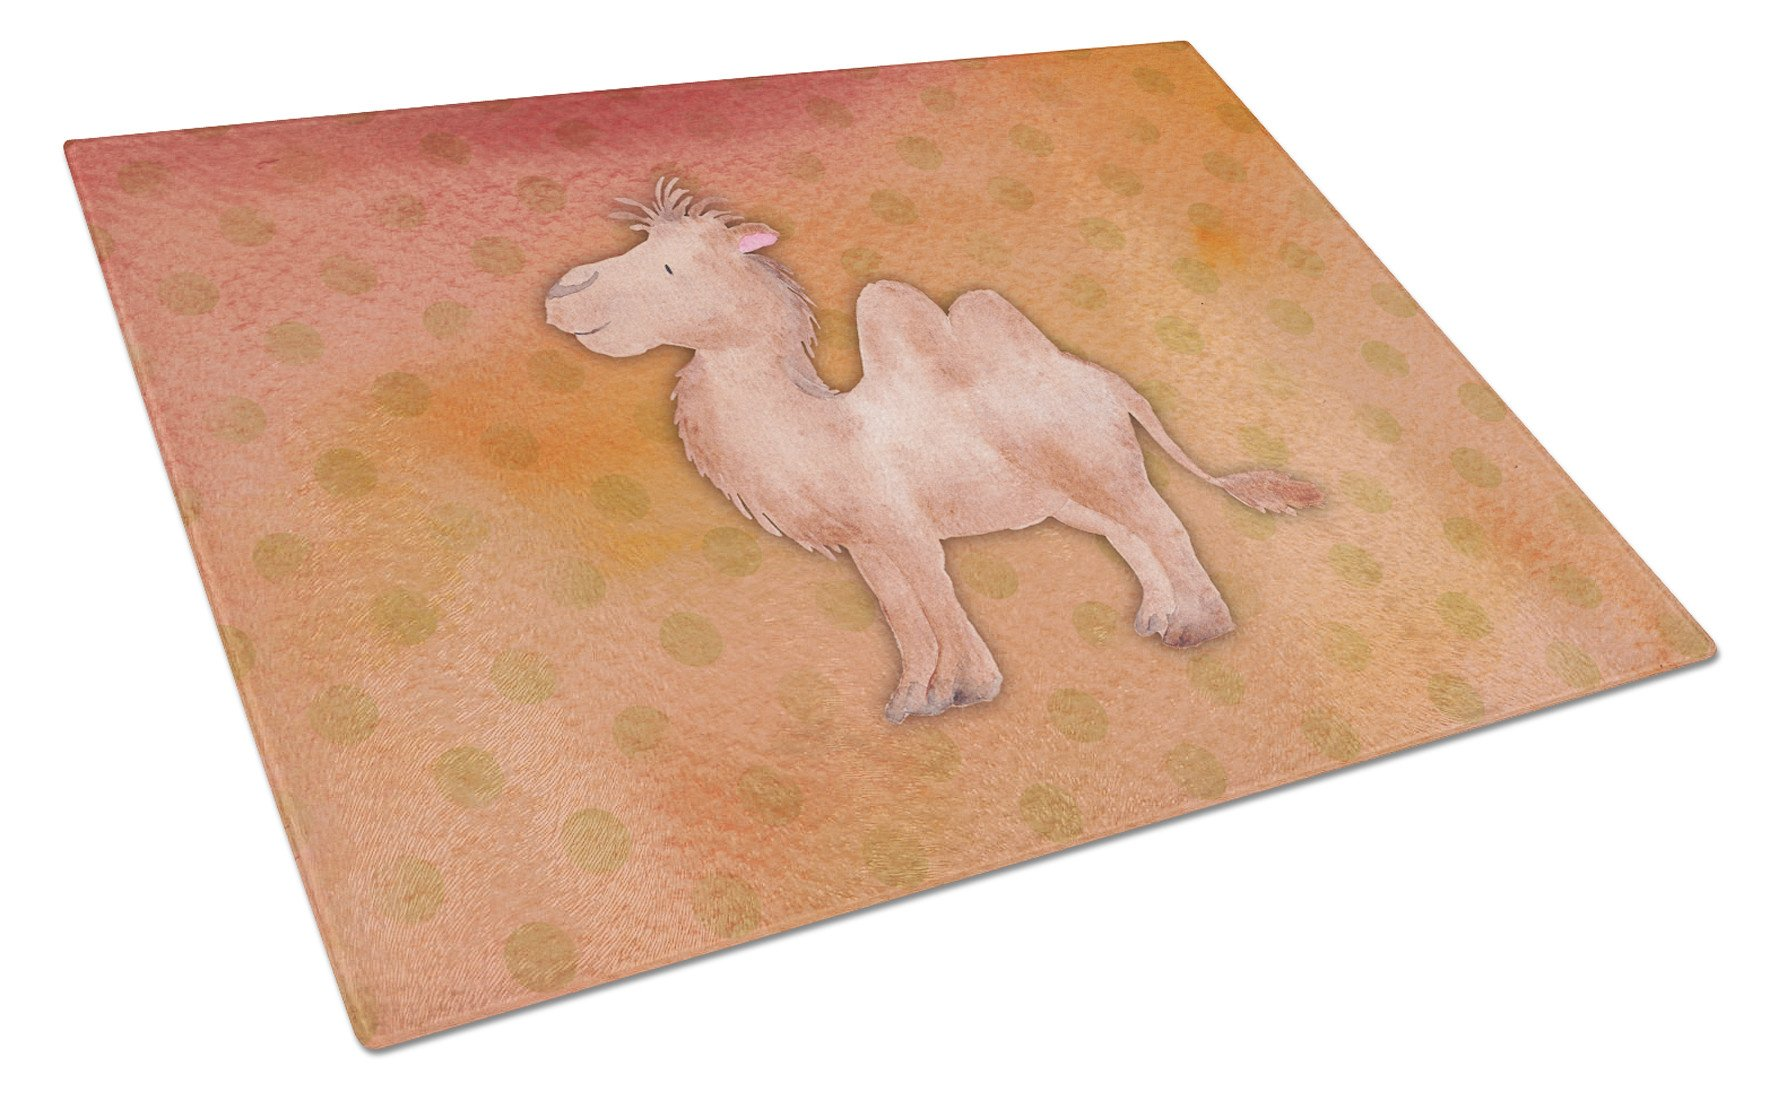 Polkadot Camel Watercolor Glass Cutting Board Large BB7393LCB by Caroline's Treasures